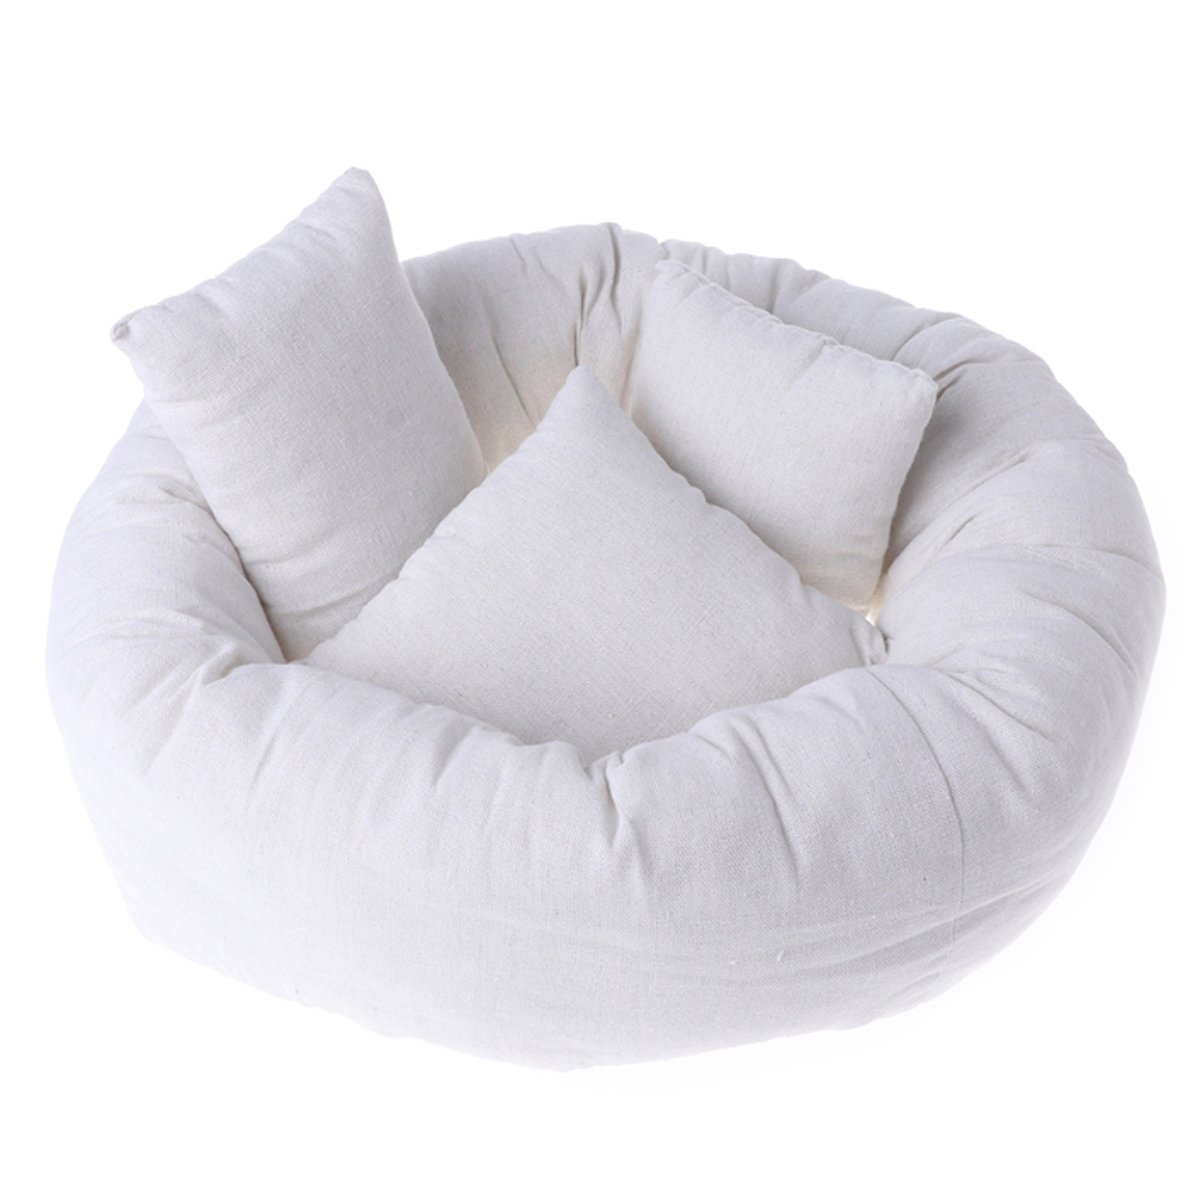 Newborn Baby Photography Posing Pillow Filler Photo Prop (1pc Donut + 3pcs Pillow, basket not included)